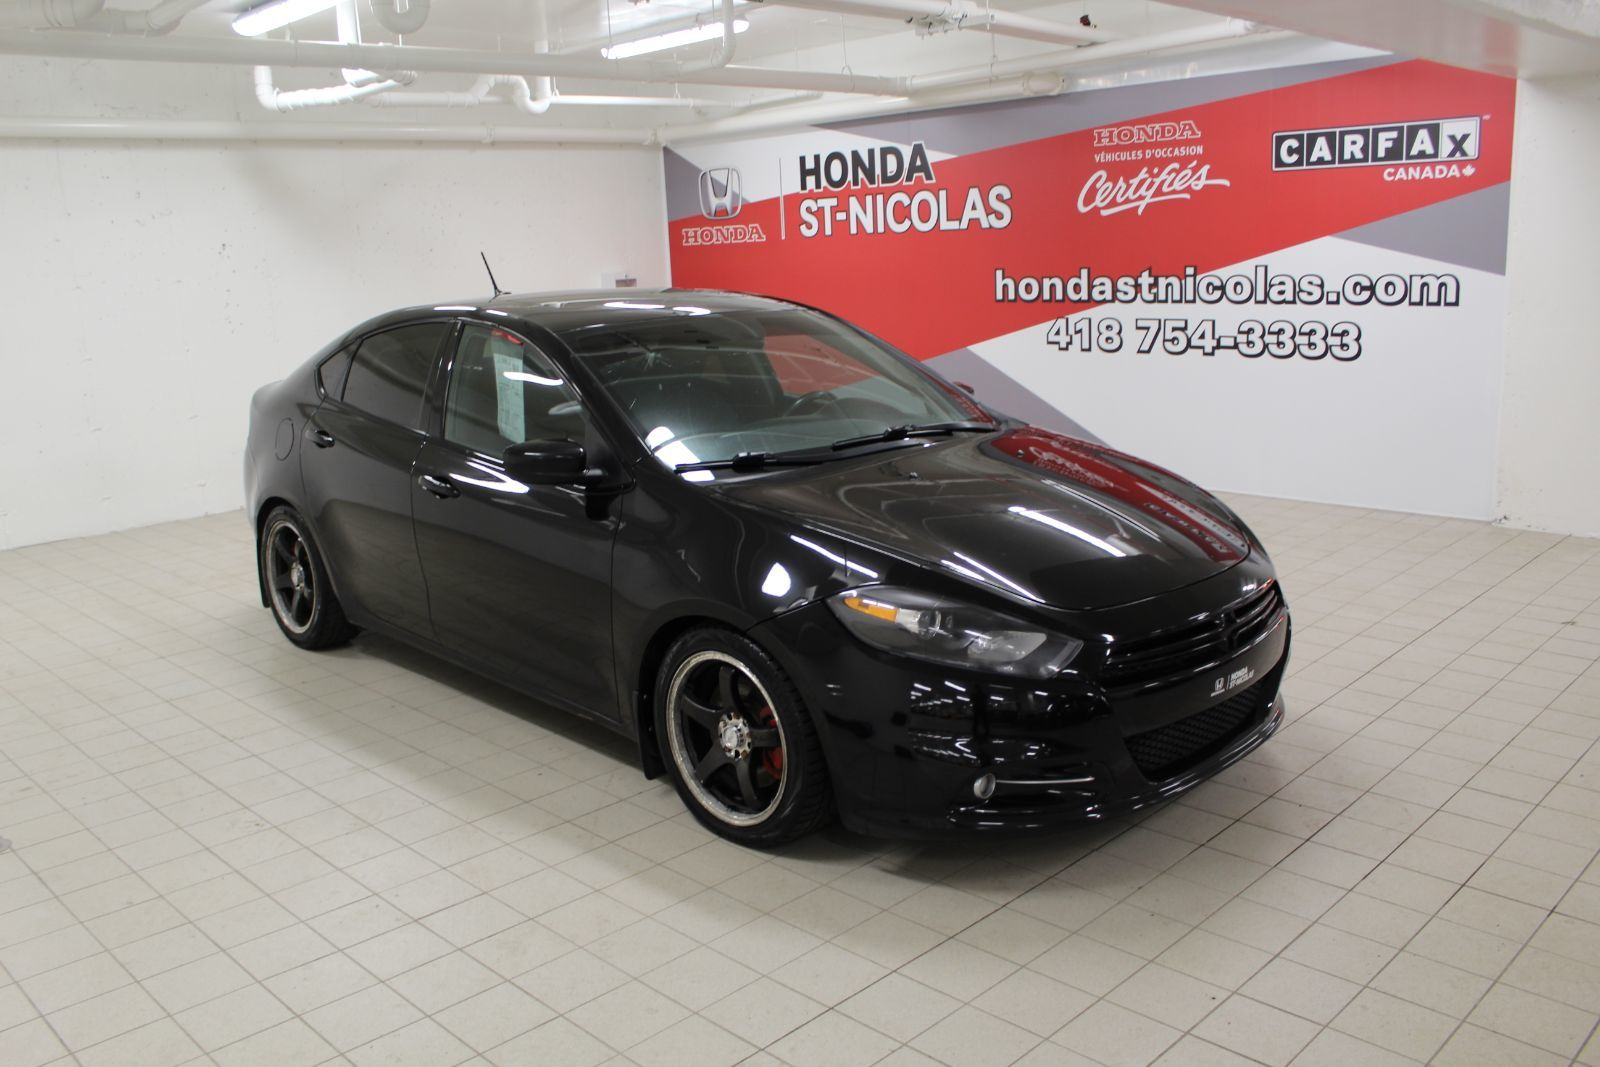 Honda St Nicolas Pre Owned 2013 Dodge Dart Sxt Turbo Mags Toit Camera For Sale In Levis